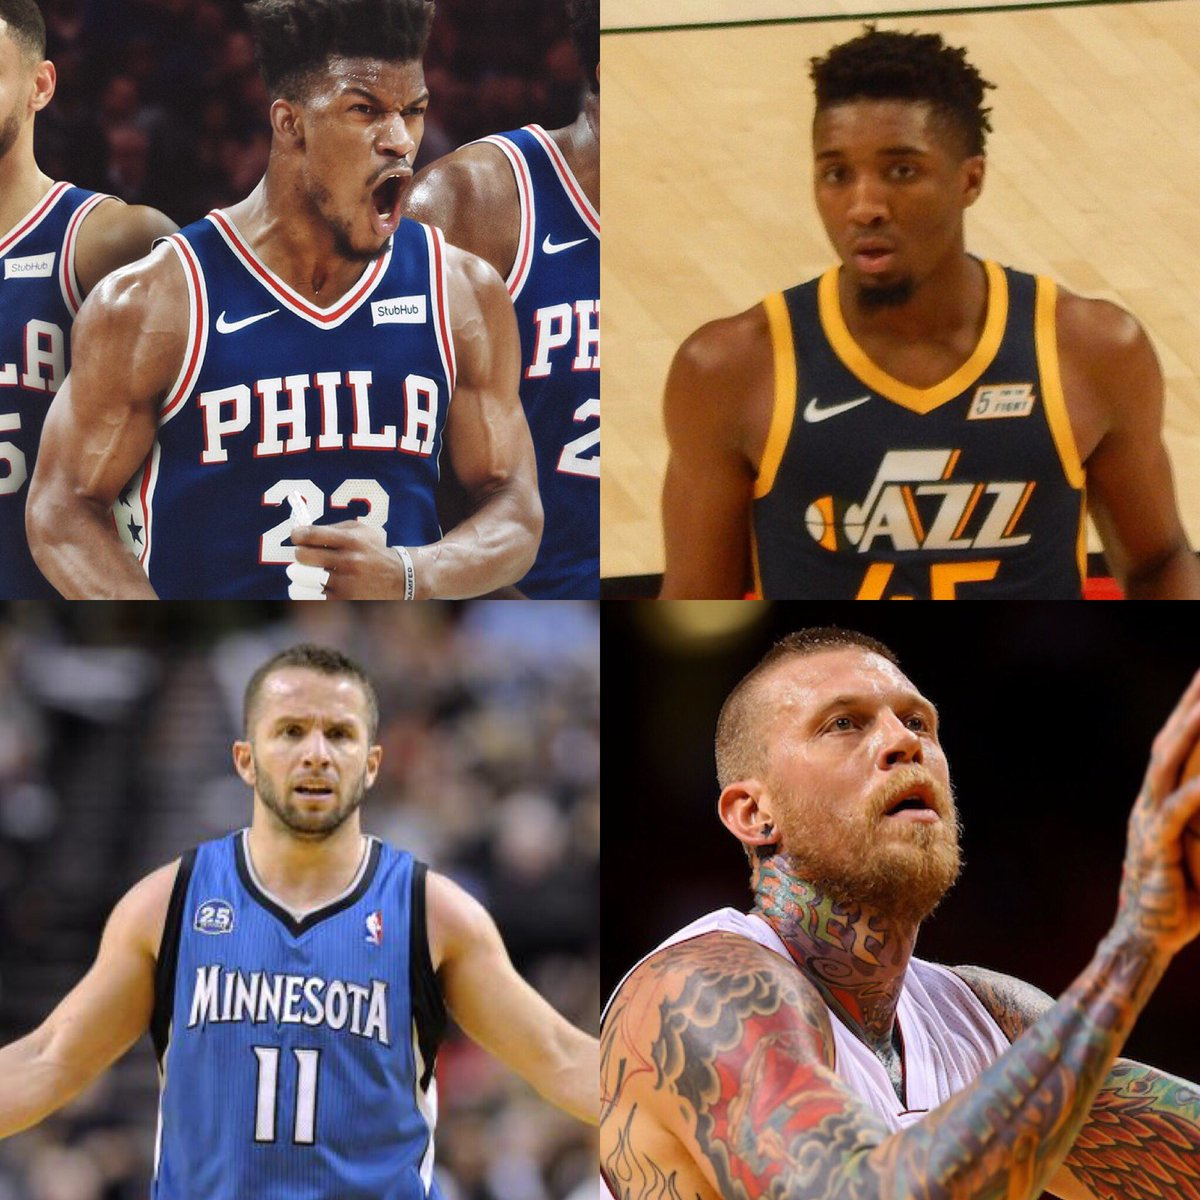 These four and many more were overlooked! When recruiting or drafting it's important to find out what players actually do with their time! This will show you how much they want/will improve. Talk is cheap! Action is everything!  #nbarooks #nbadraft2019 #mcbconsulting #recruiting